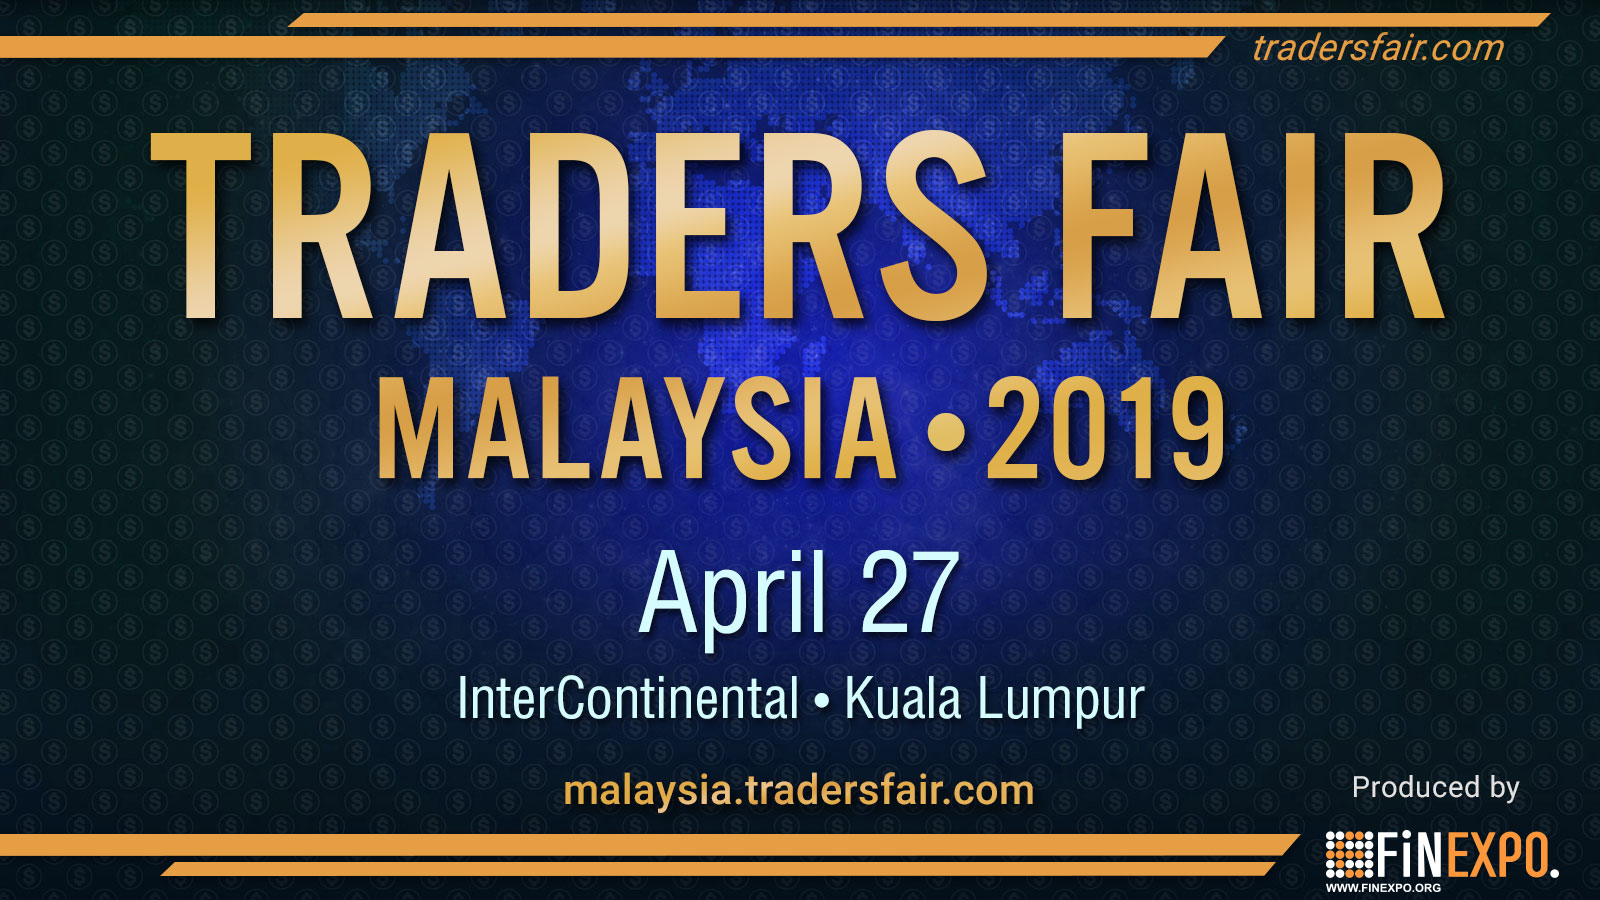 Traders Fair Malasia